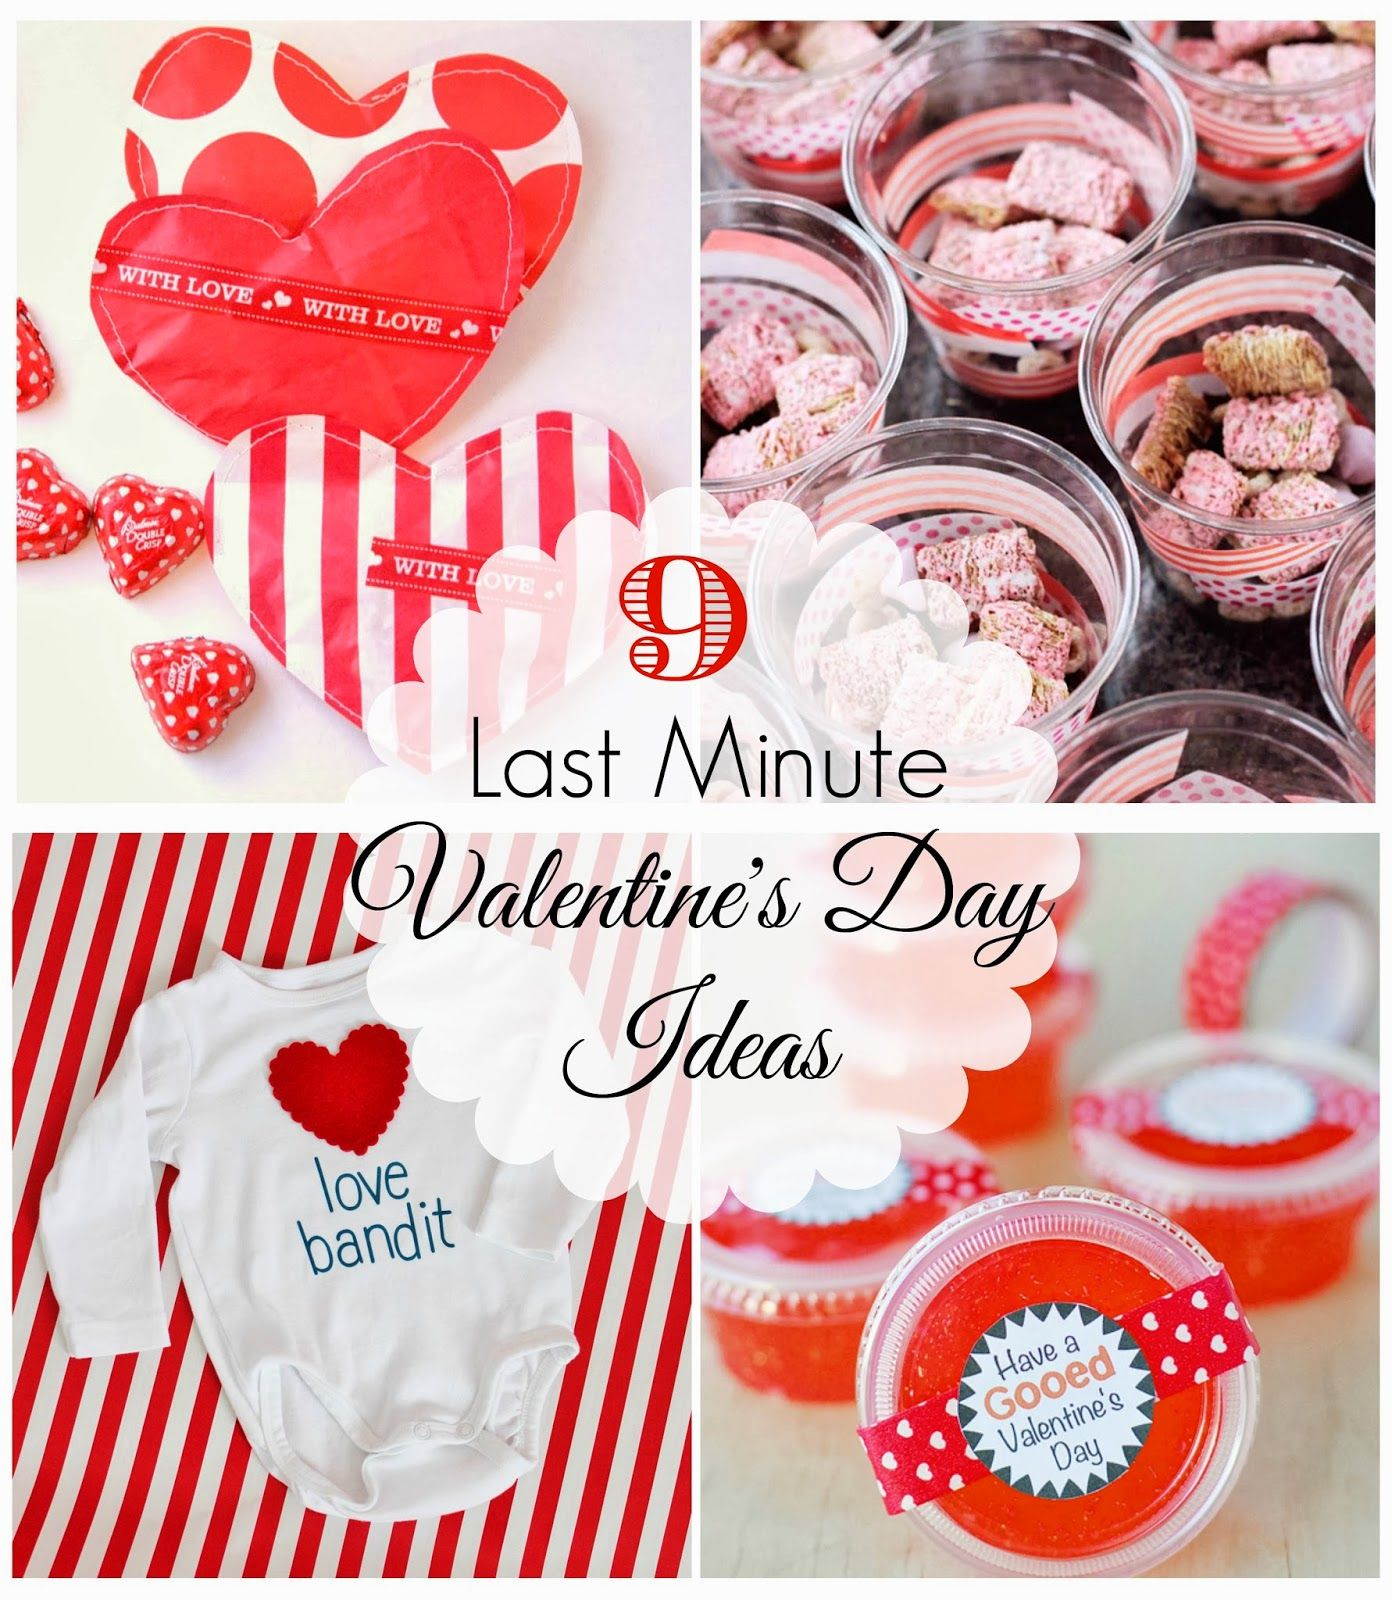 Diy 9 Last Minute Valentines Ideas Printables, Treats, And More